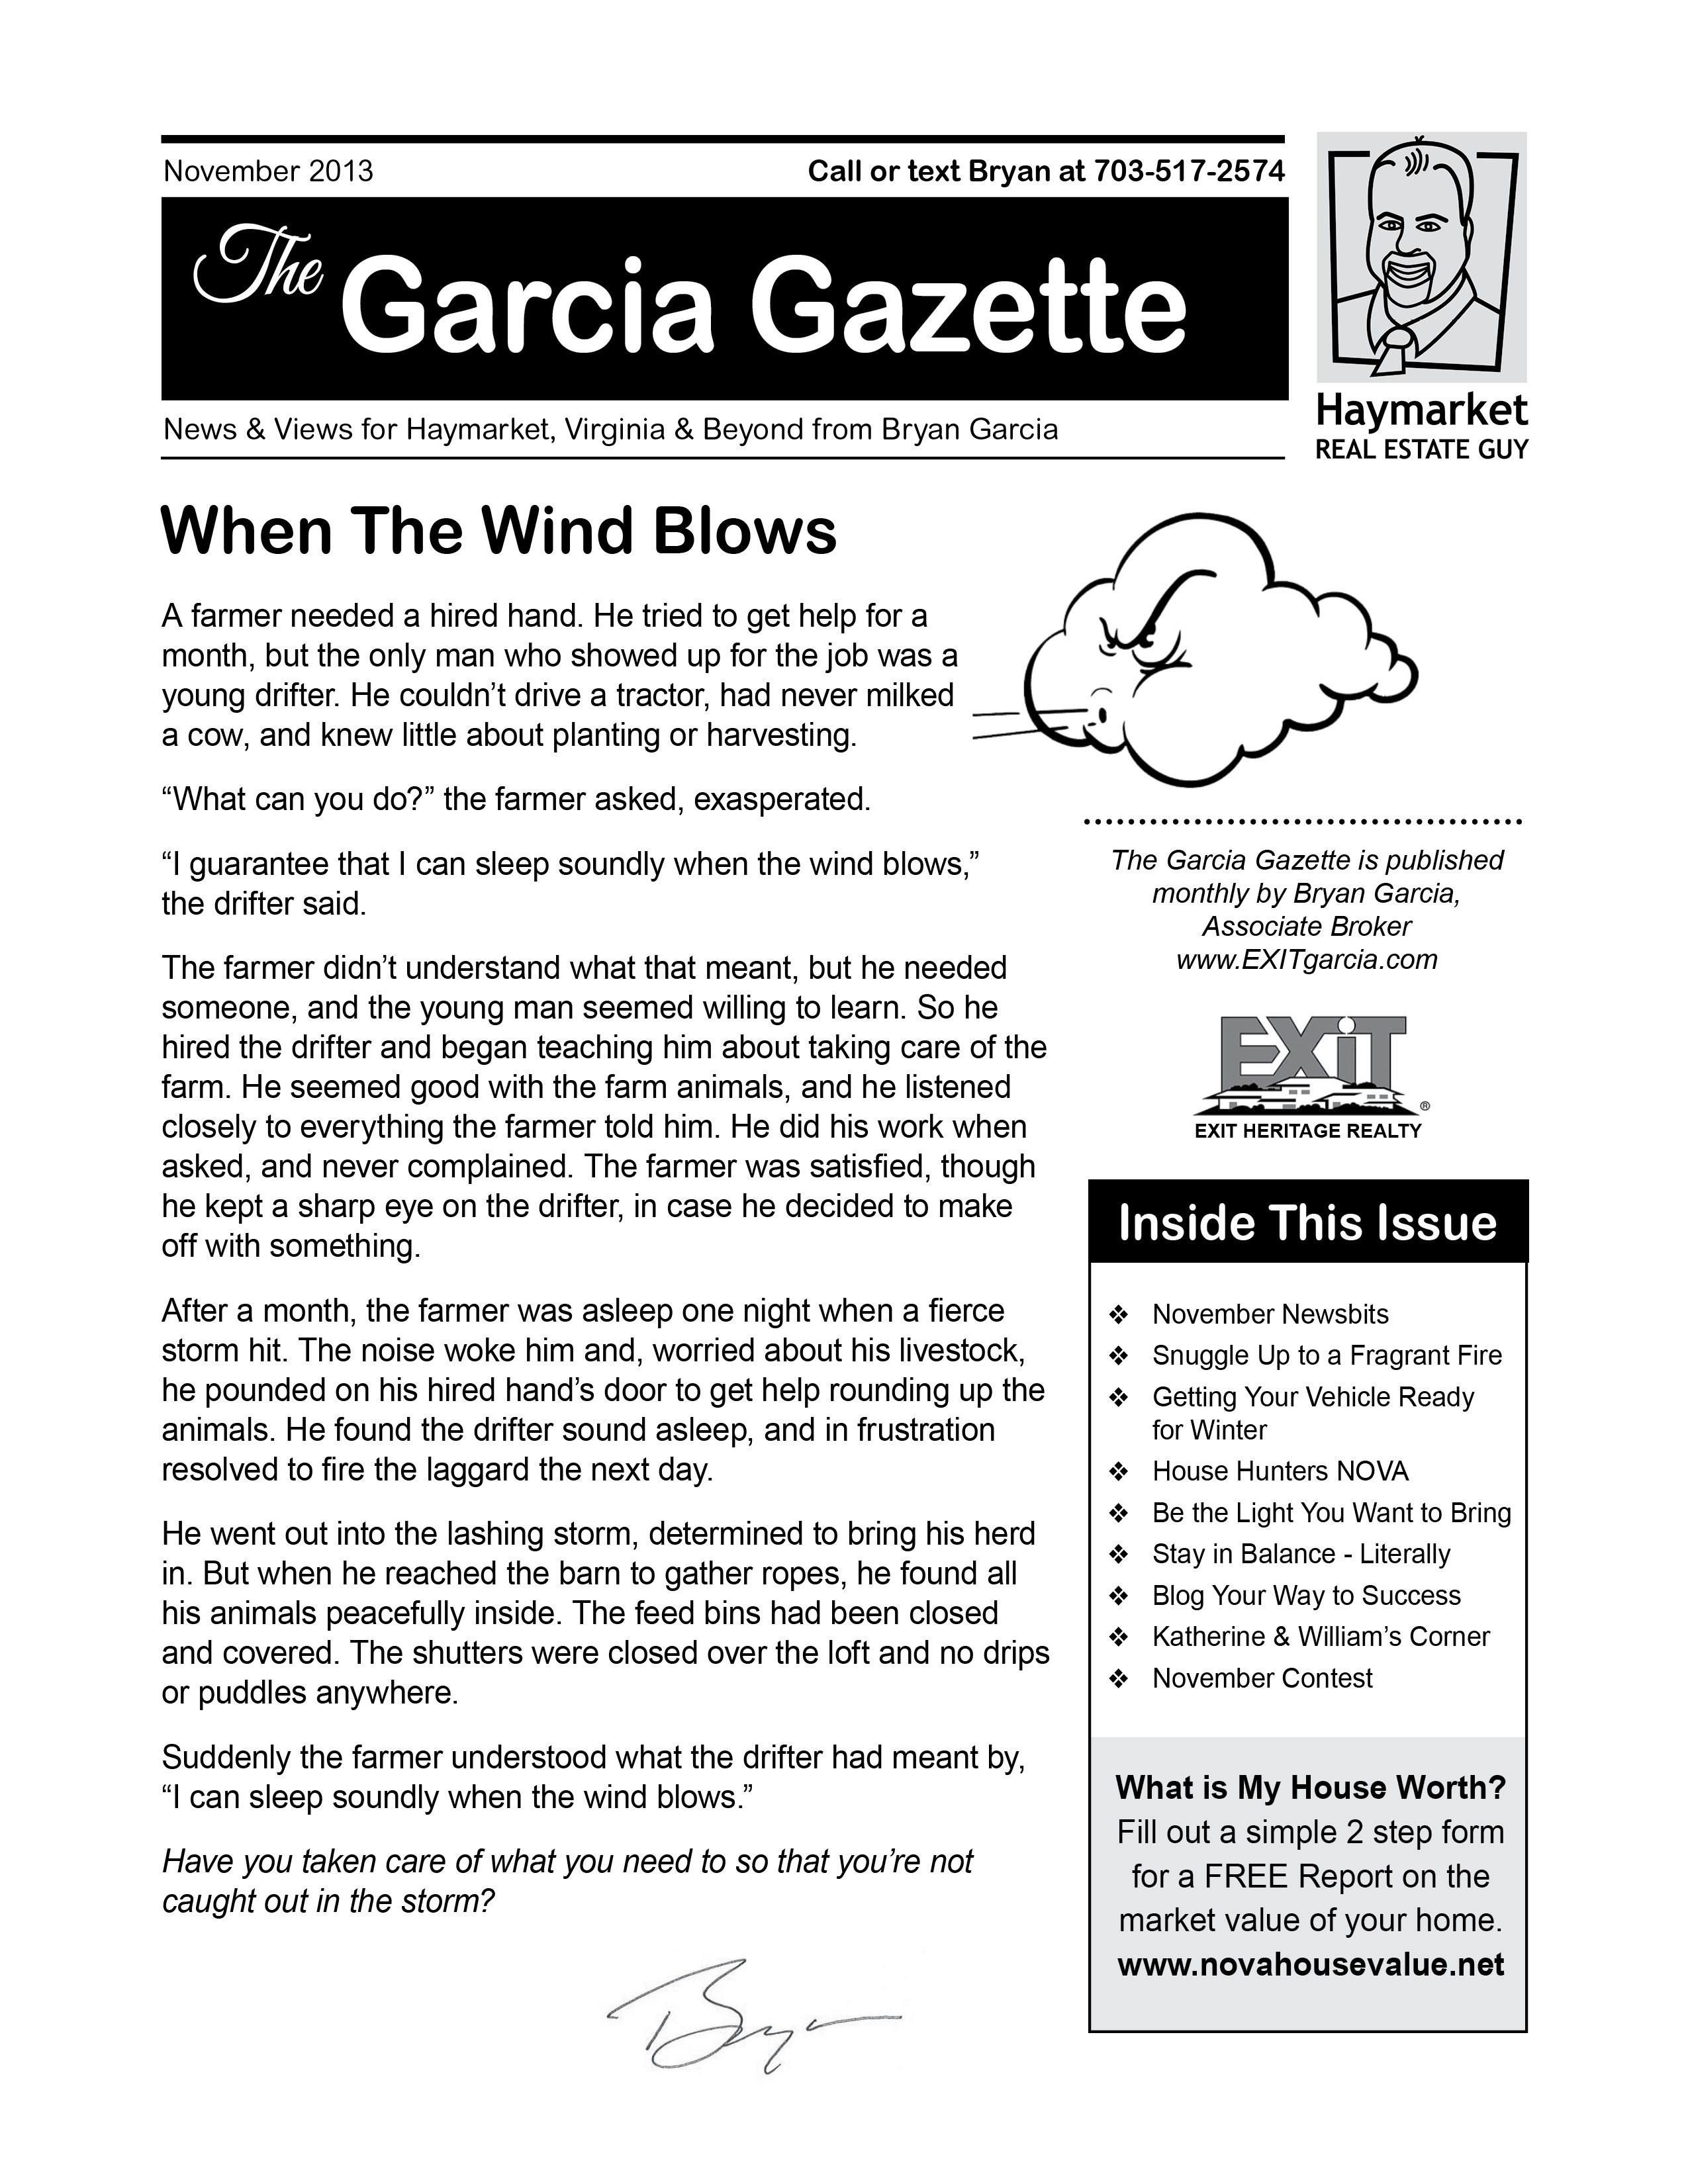 Garcia News November 2013 Issue is Out